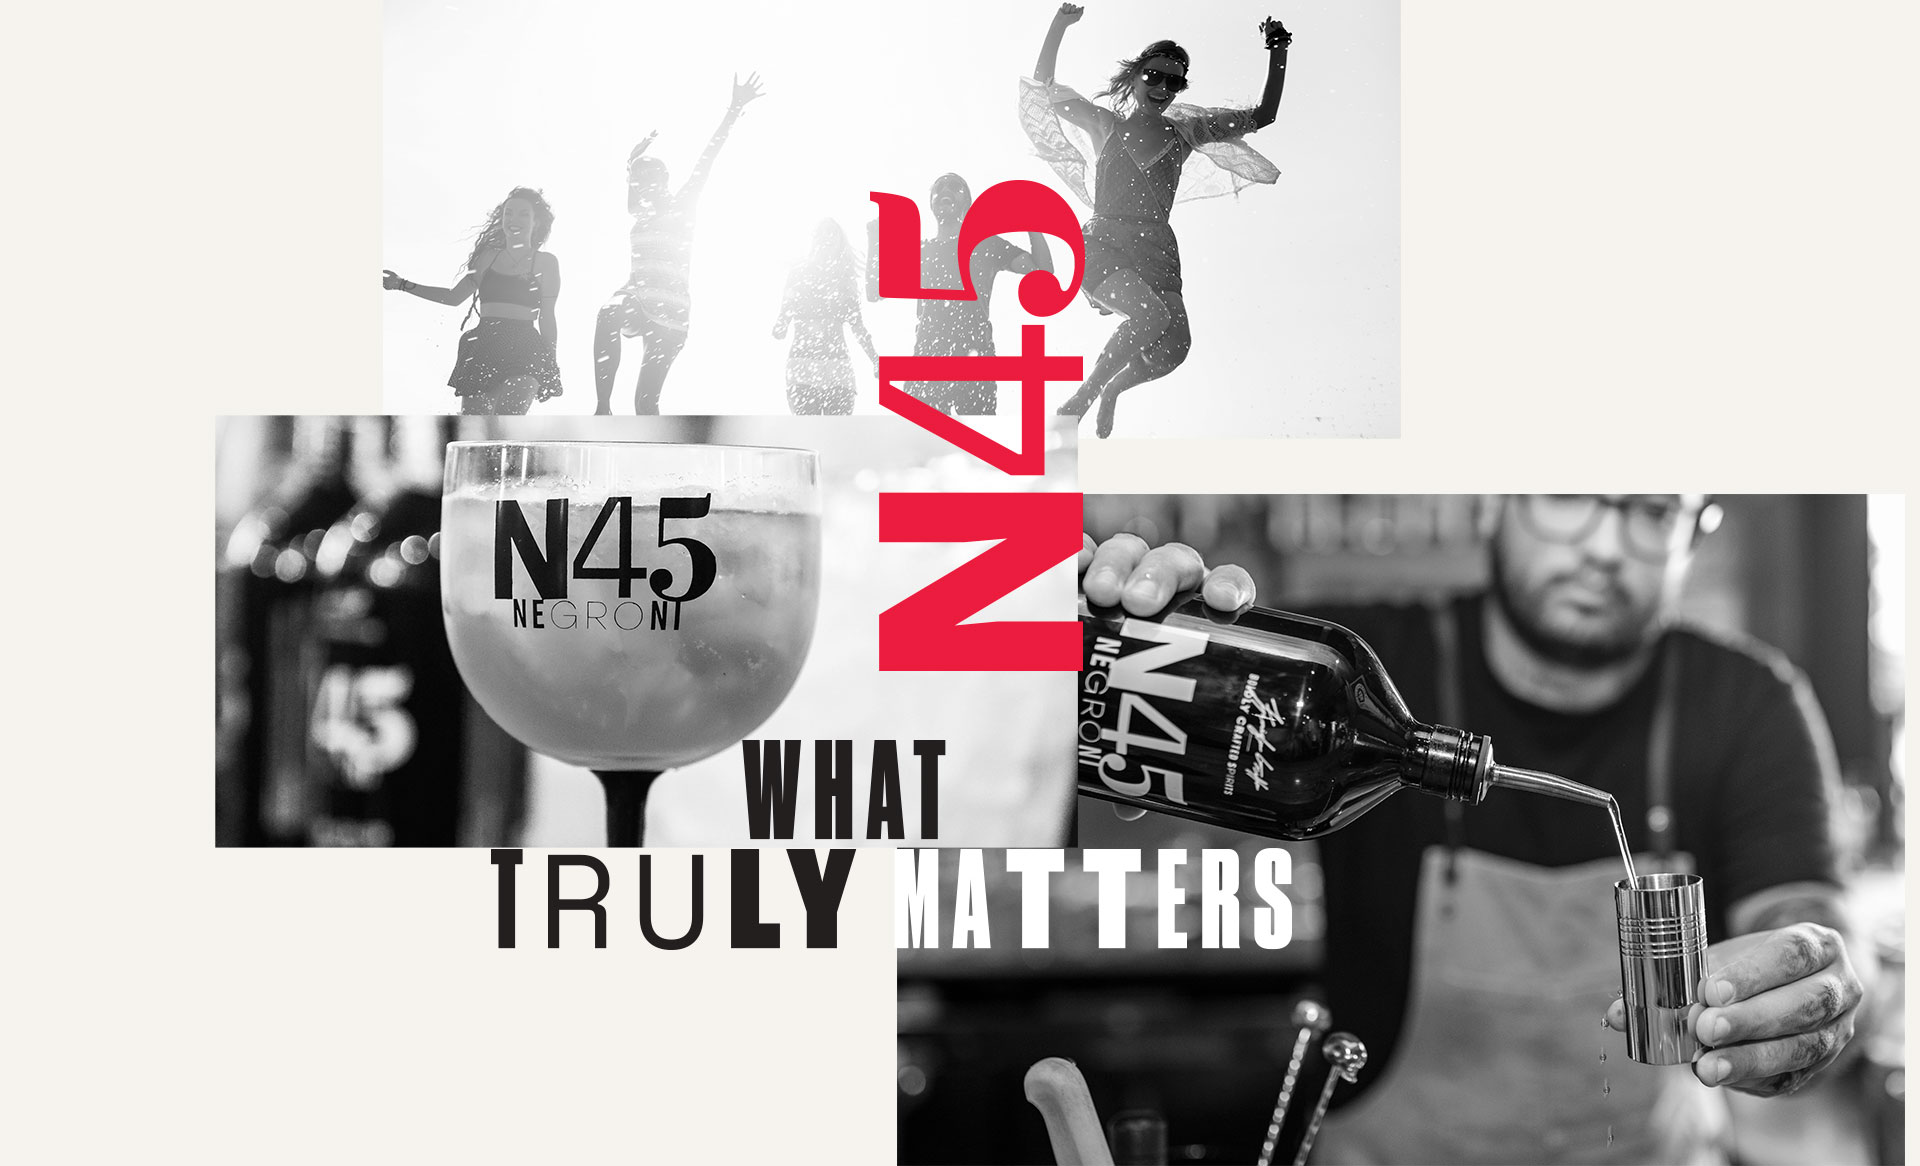 Negroni N45 - What Truly Matters